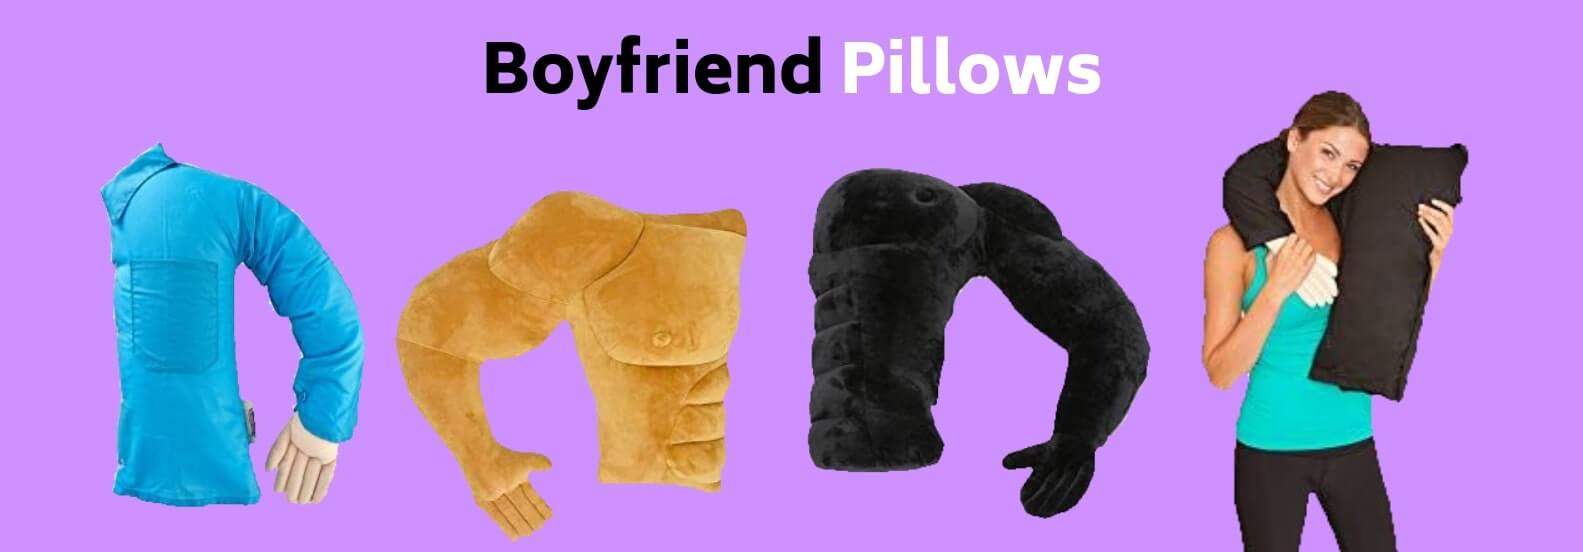 bf pillow slide1